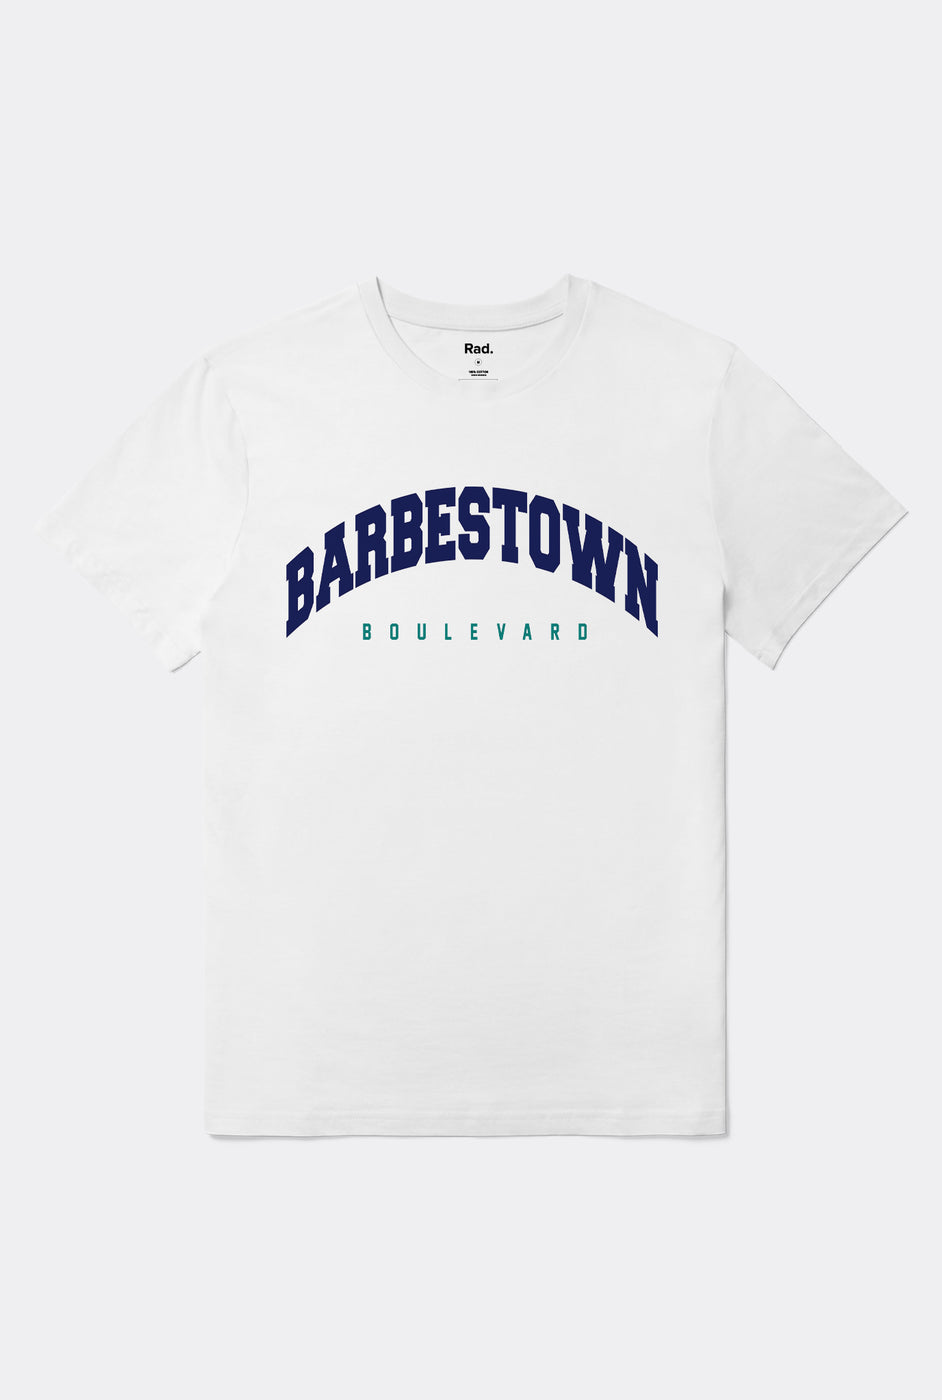 T-Shirt S/S Barbestown